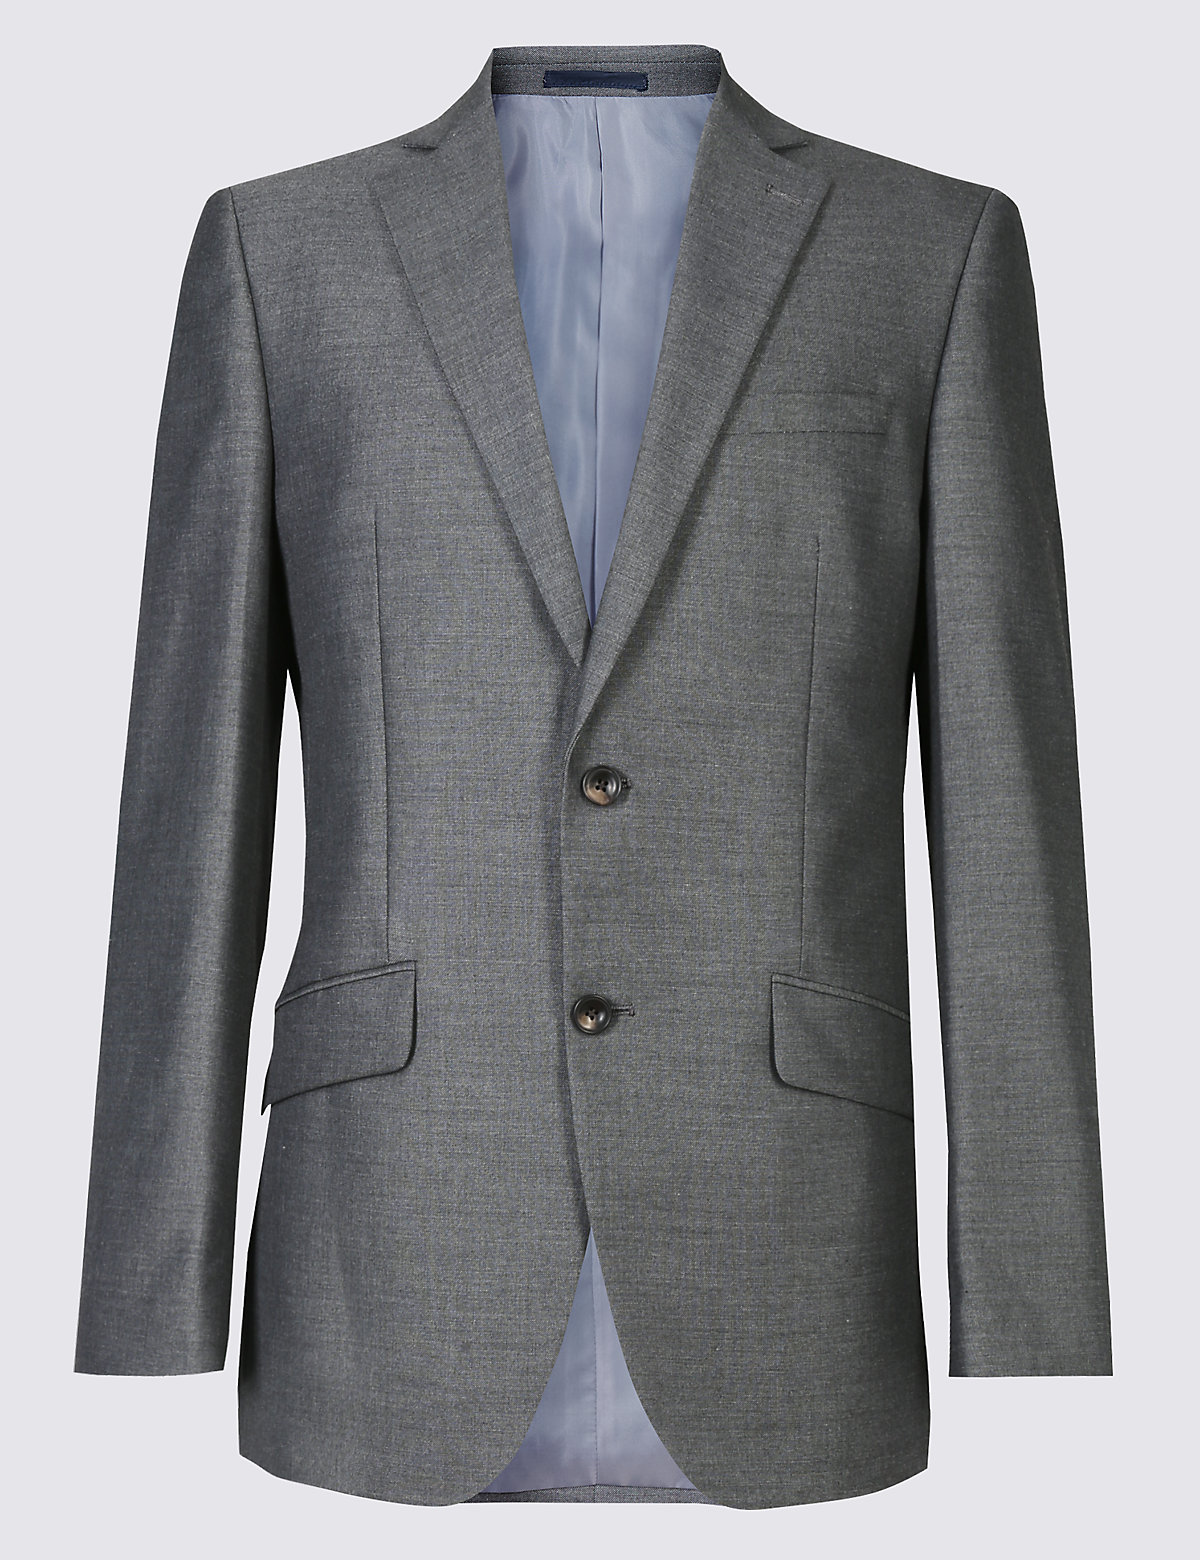 Marks & Spencer Big & Tall Grey Tailored Fit Jacket